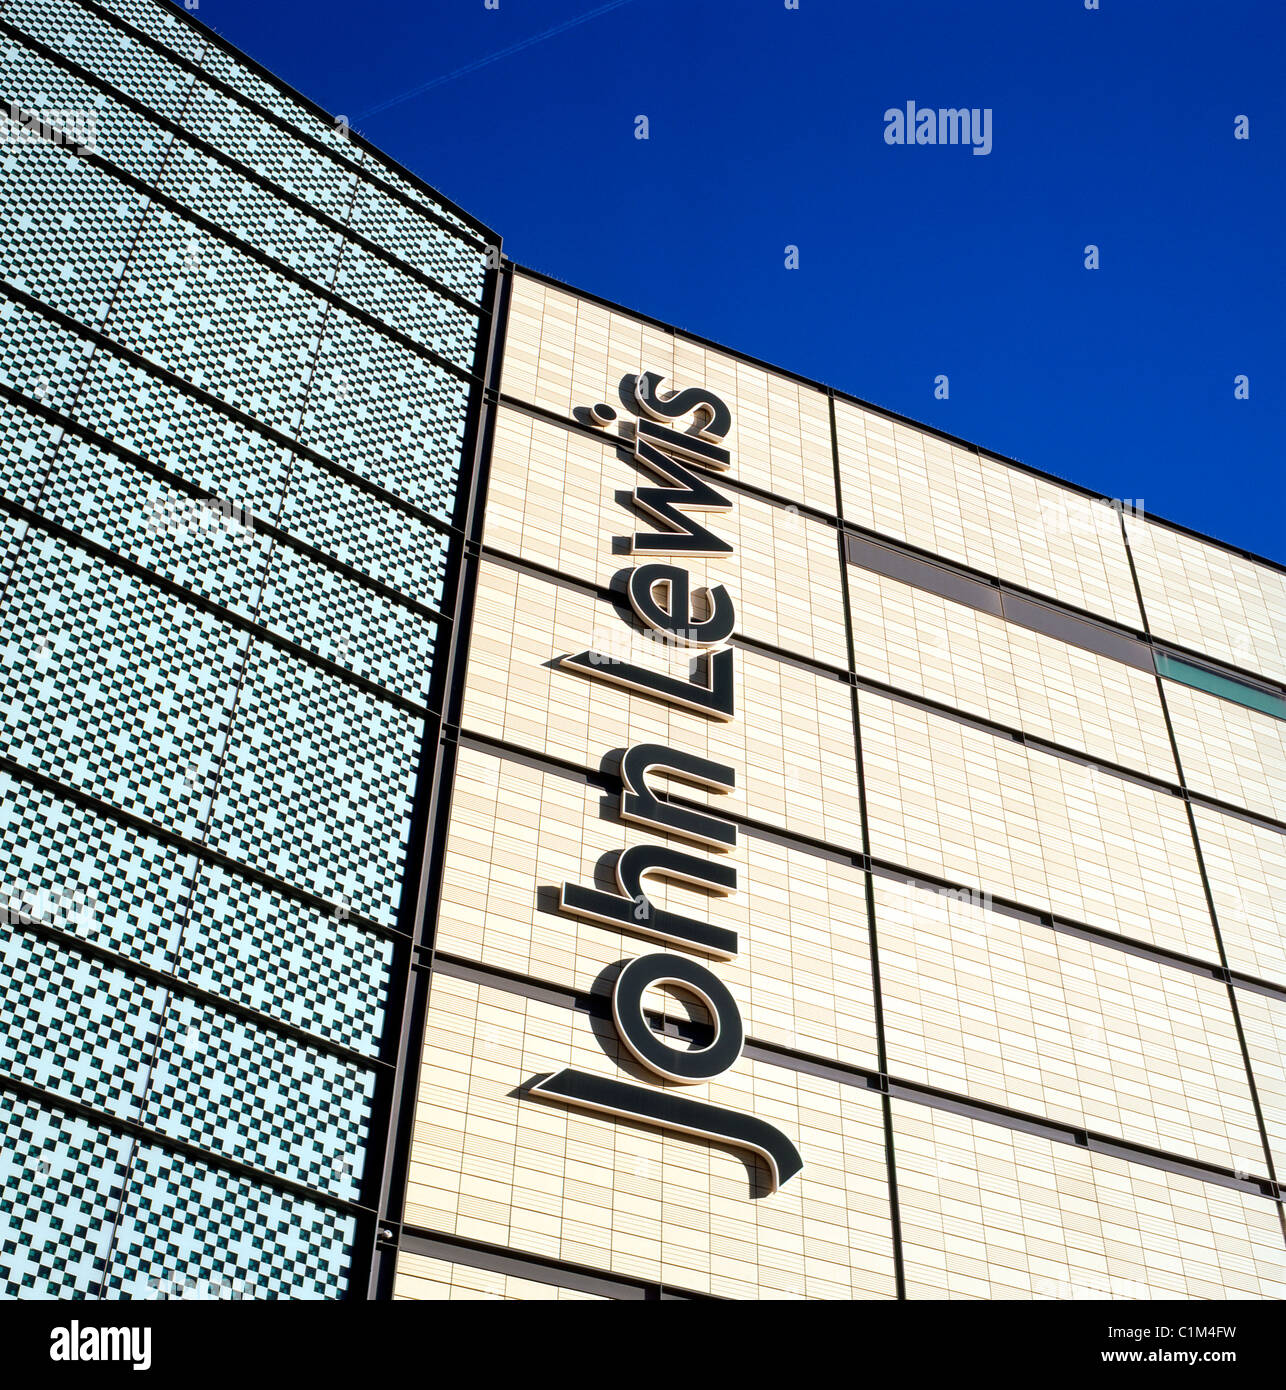 Exterior view of new John Lewis Department Store building and sign in Cardiff City Centre, Wales UK    KATHY DEWITT - Stock Image